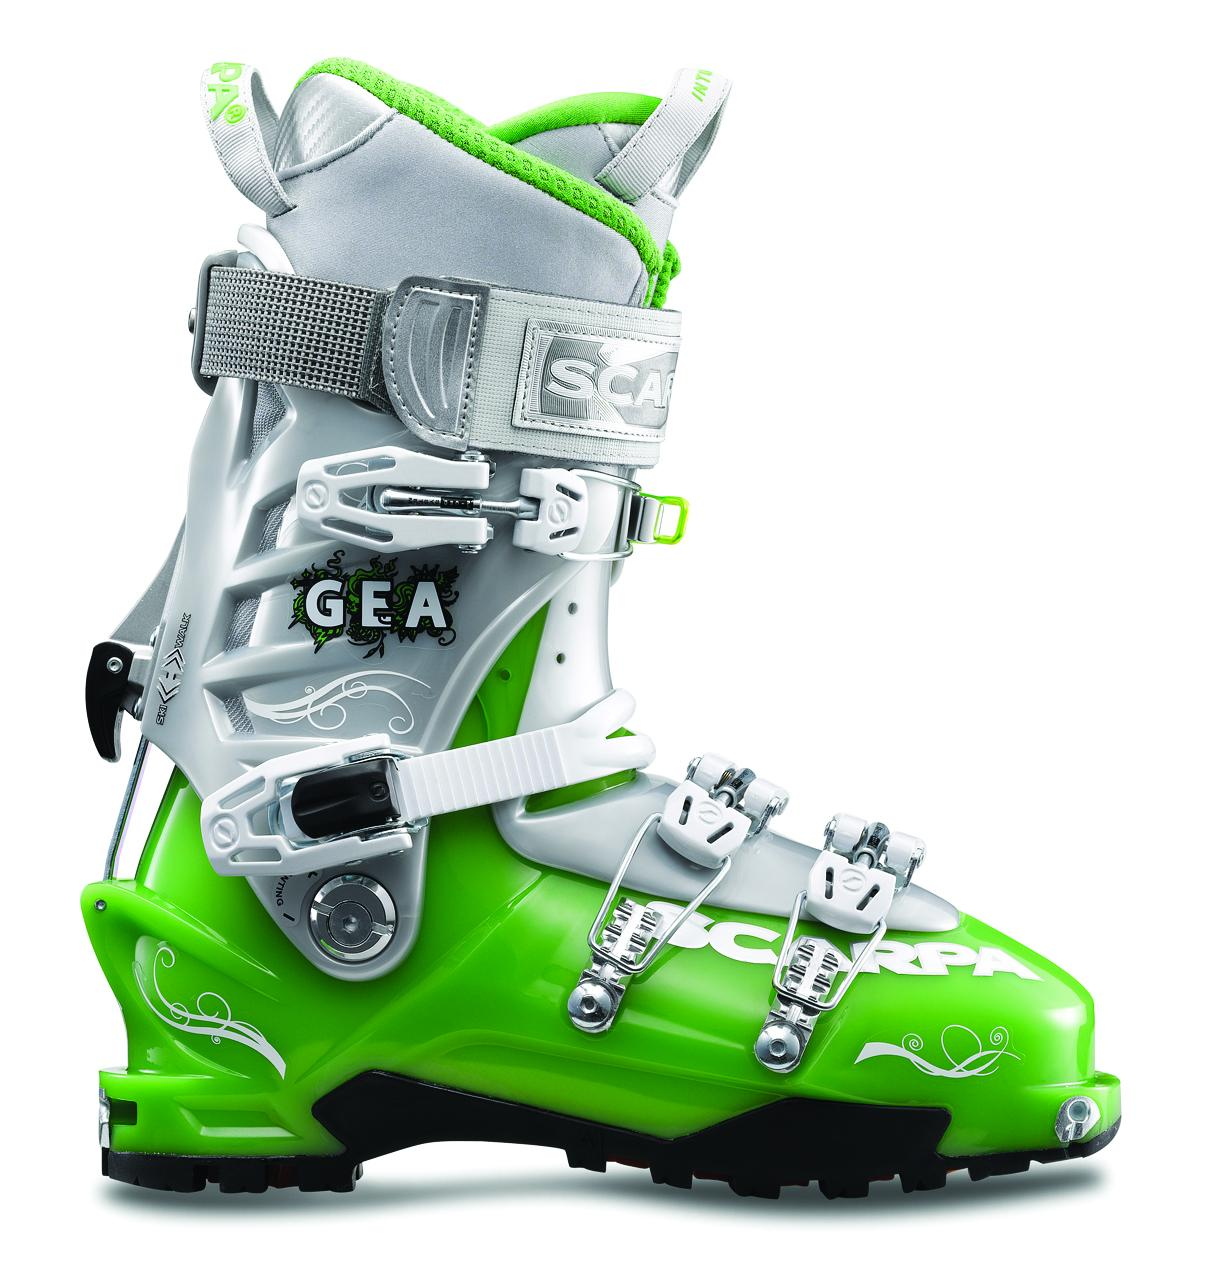 Scarpa Gea, Blister Gear Review